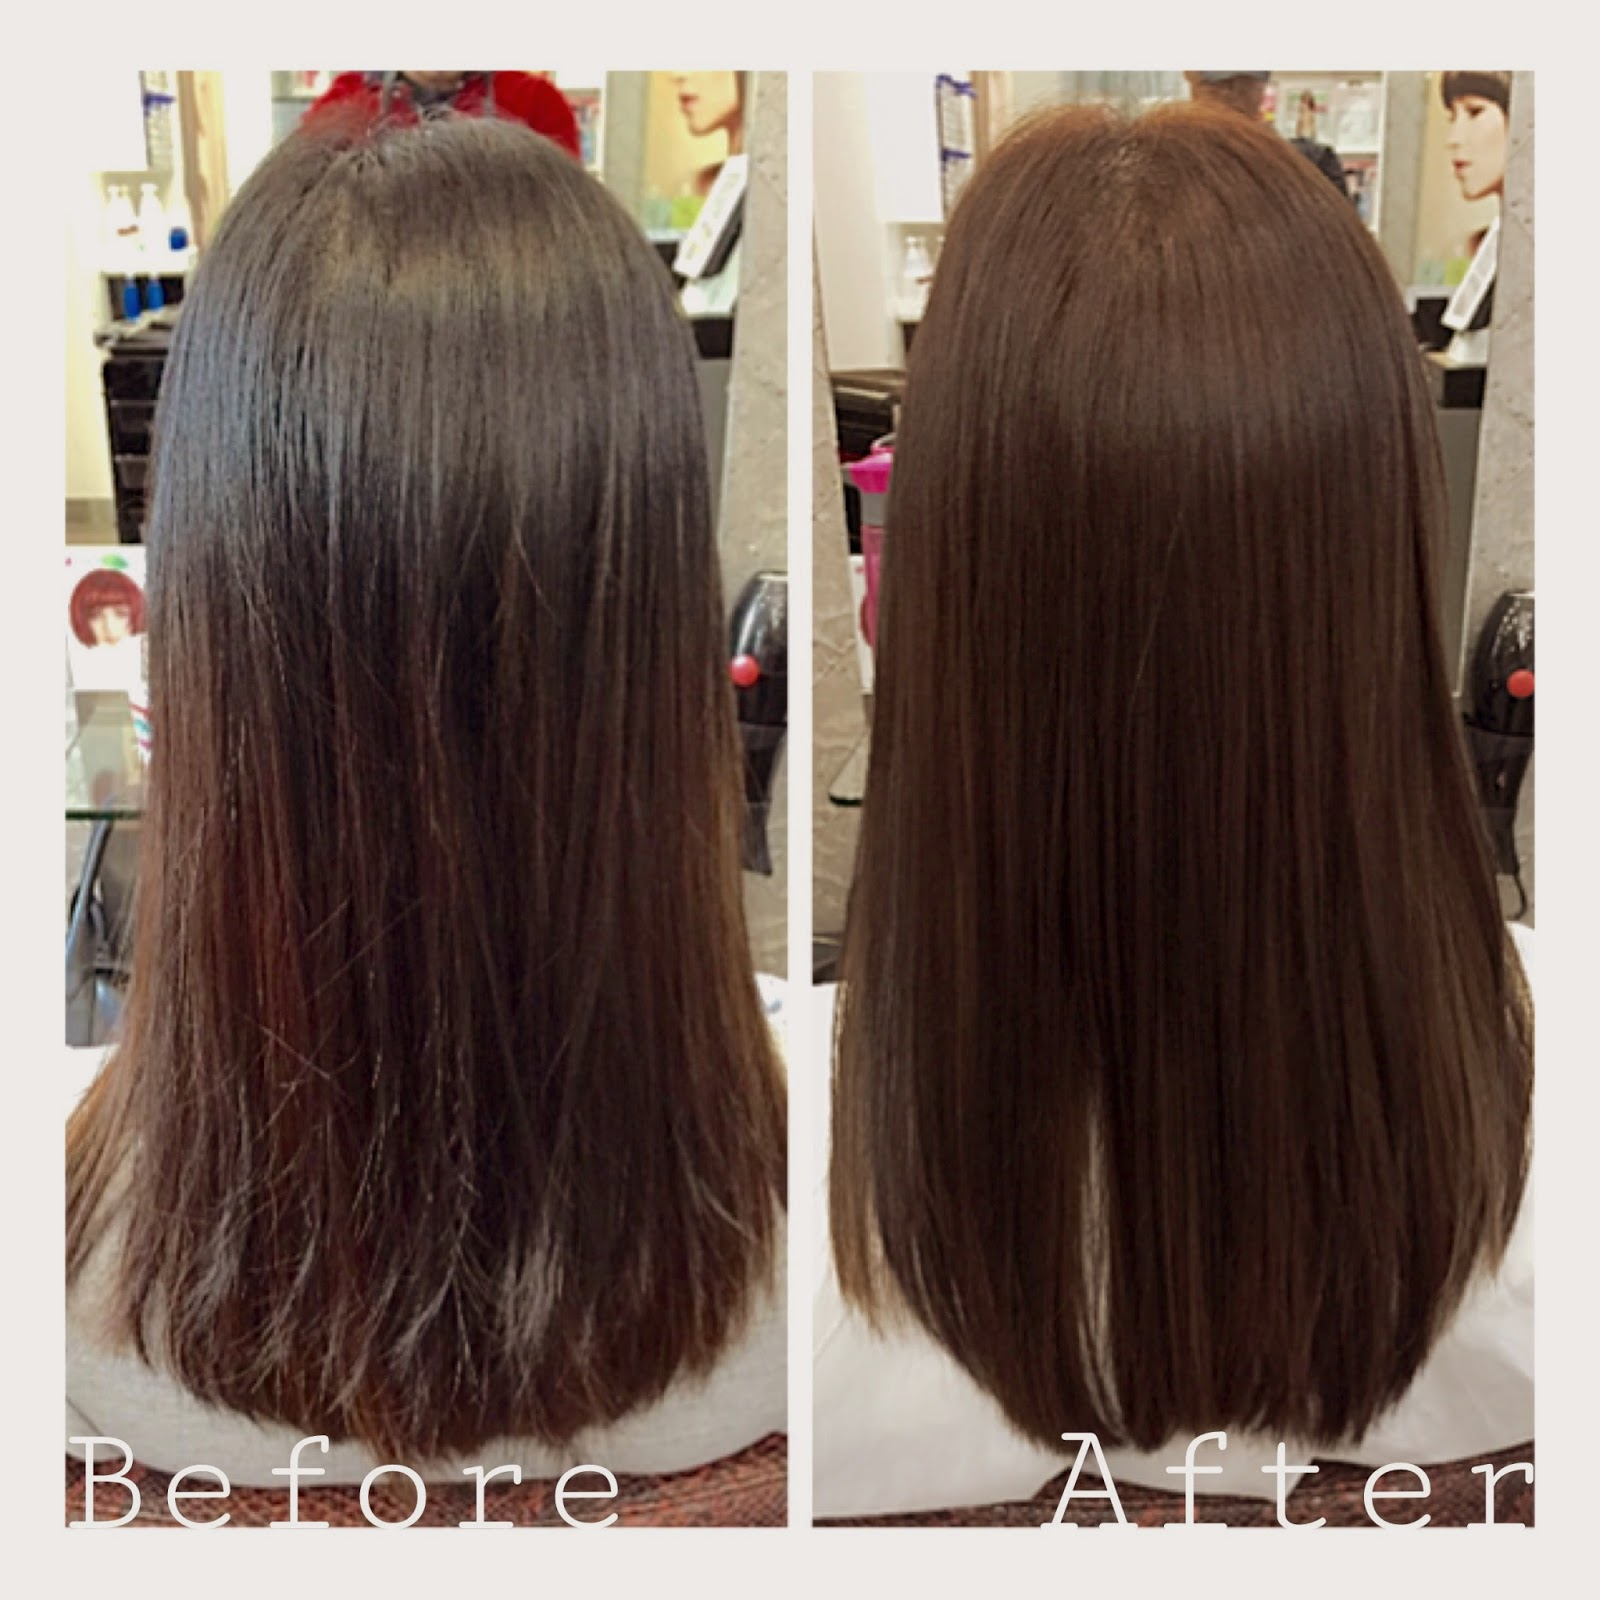 Vannys Telling Everything Ammonia Free Hair Colouring During My